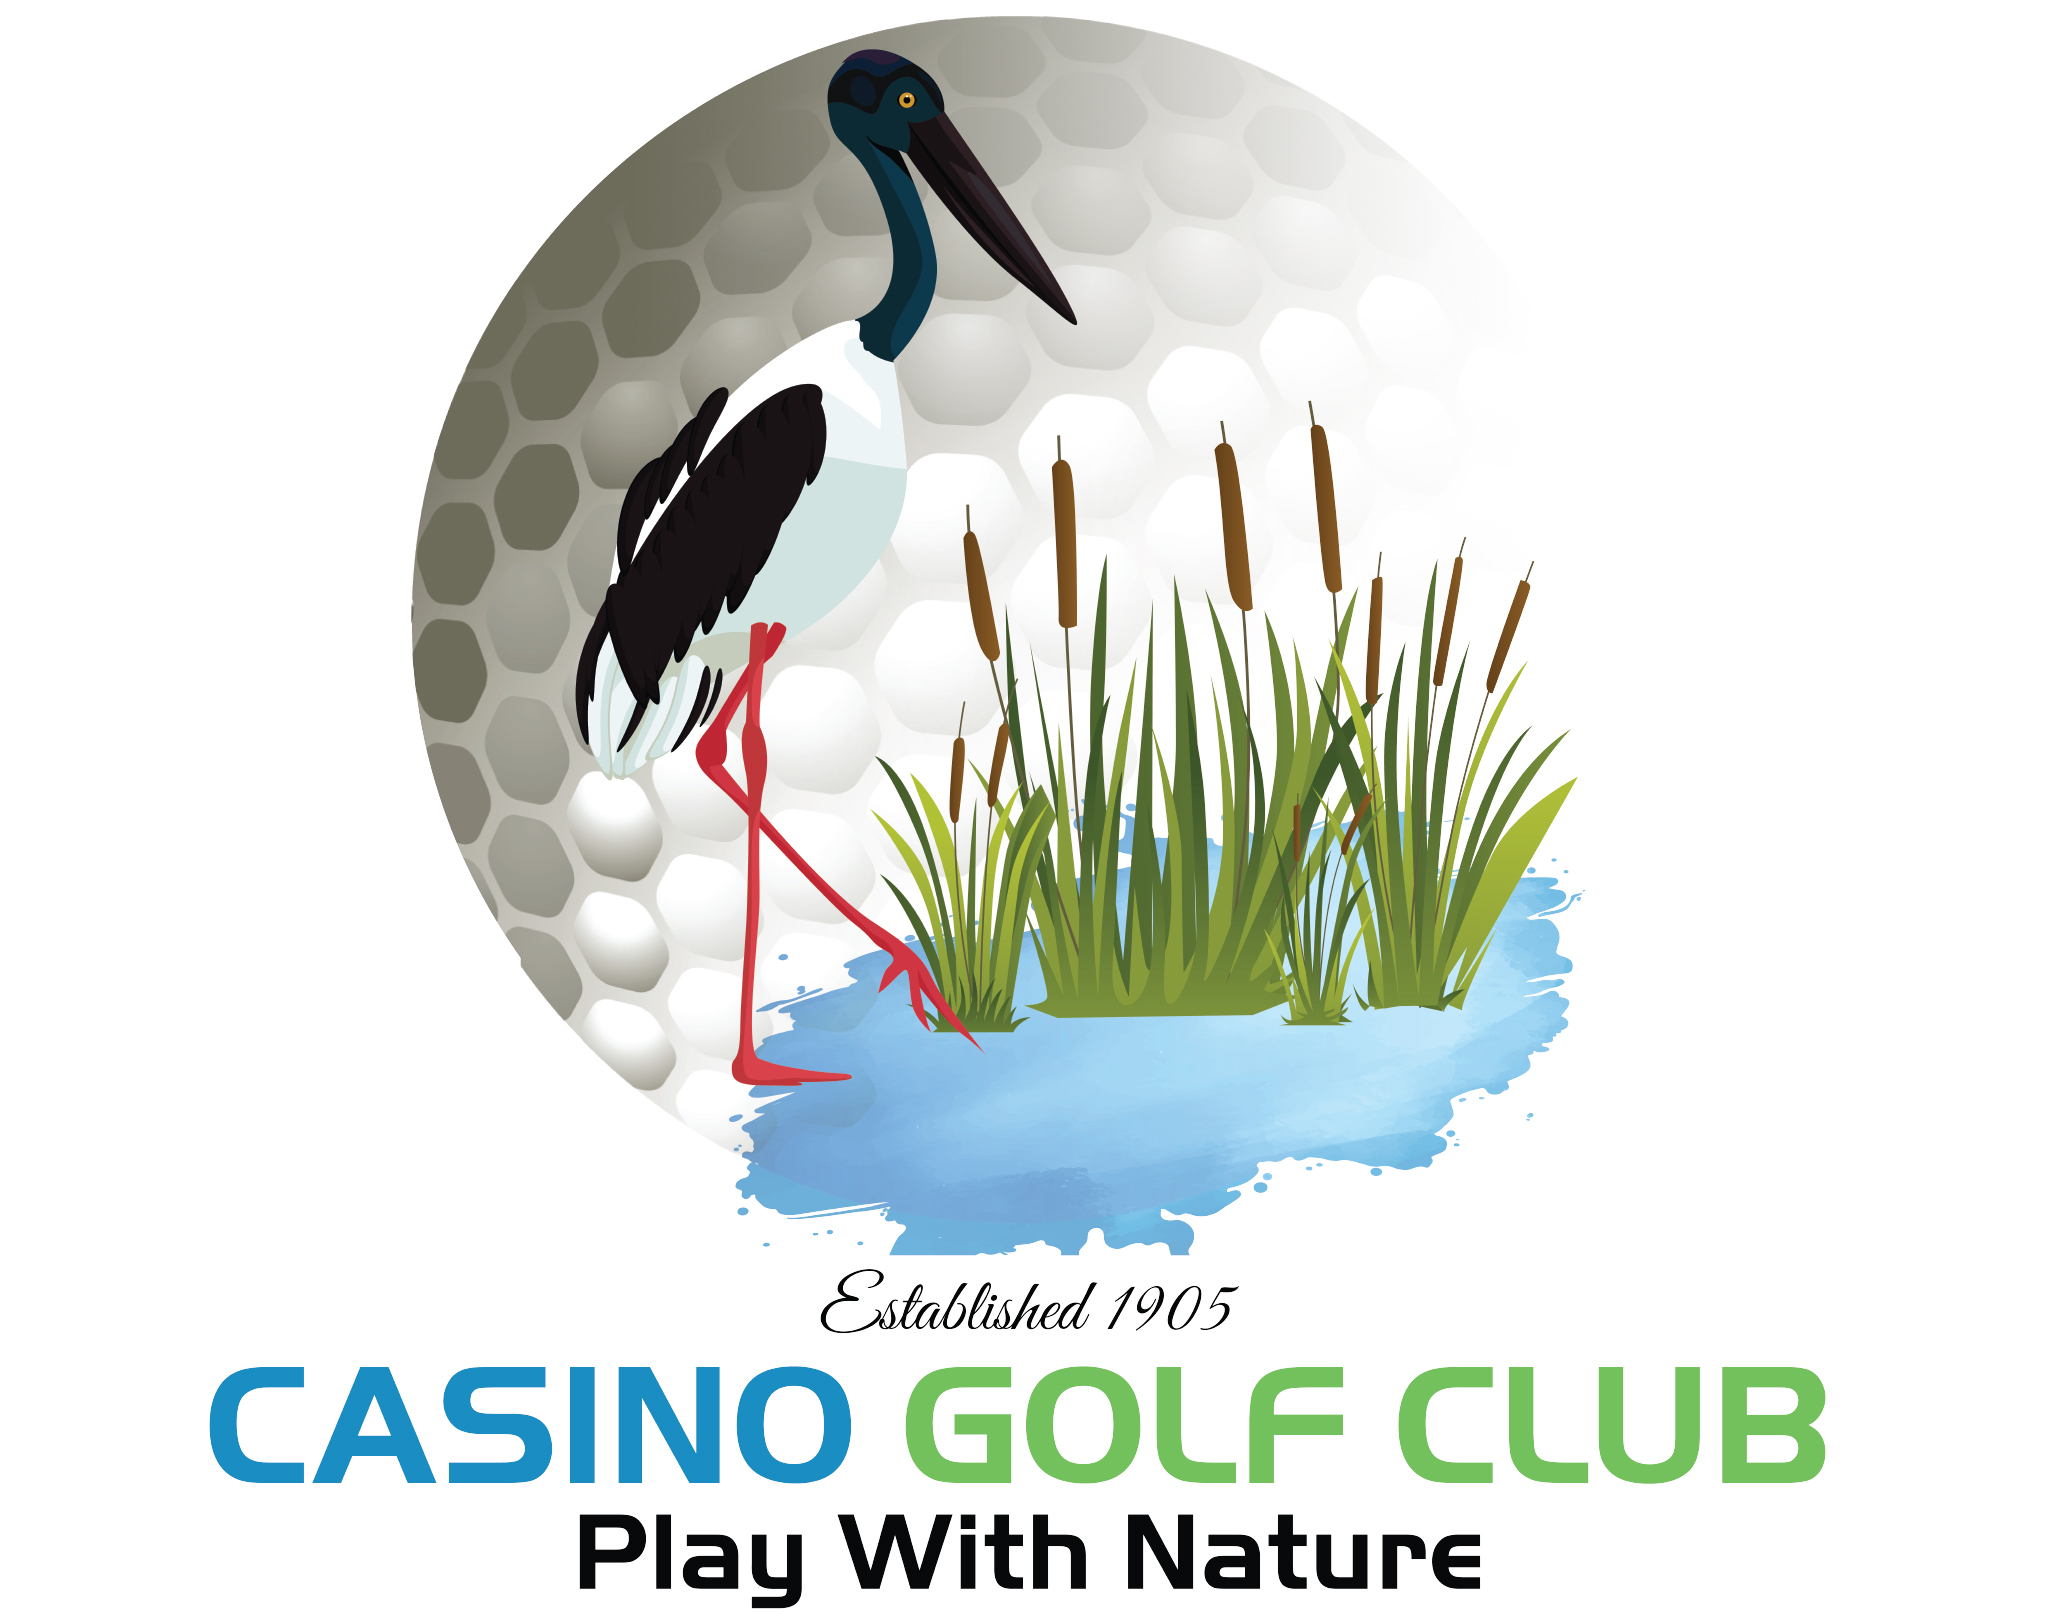 Casino Golf Club